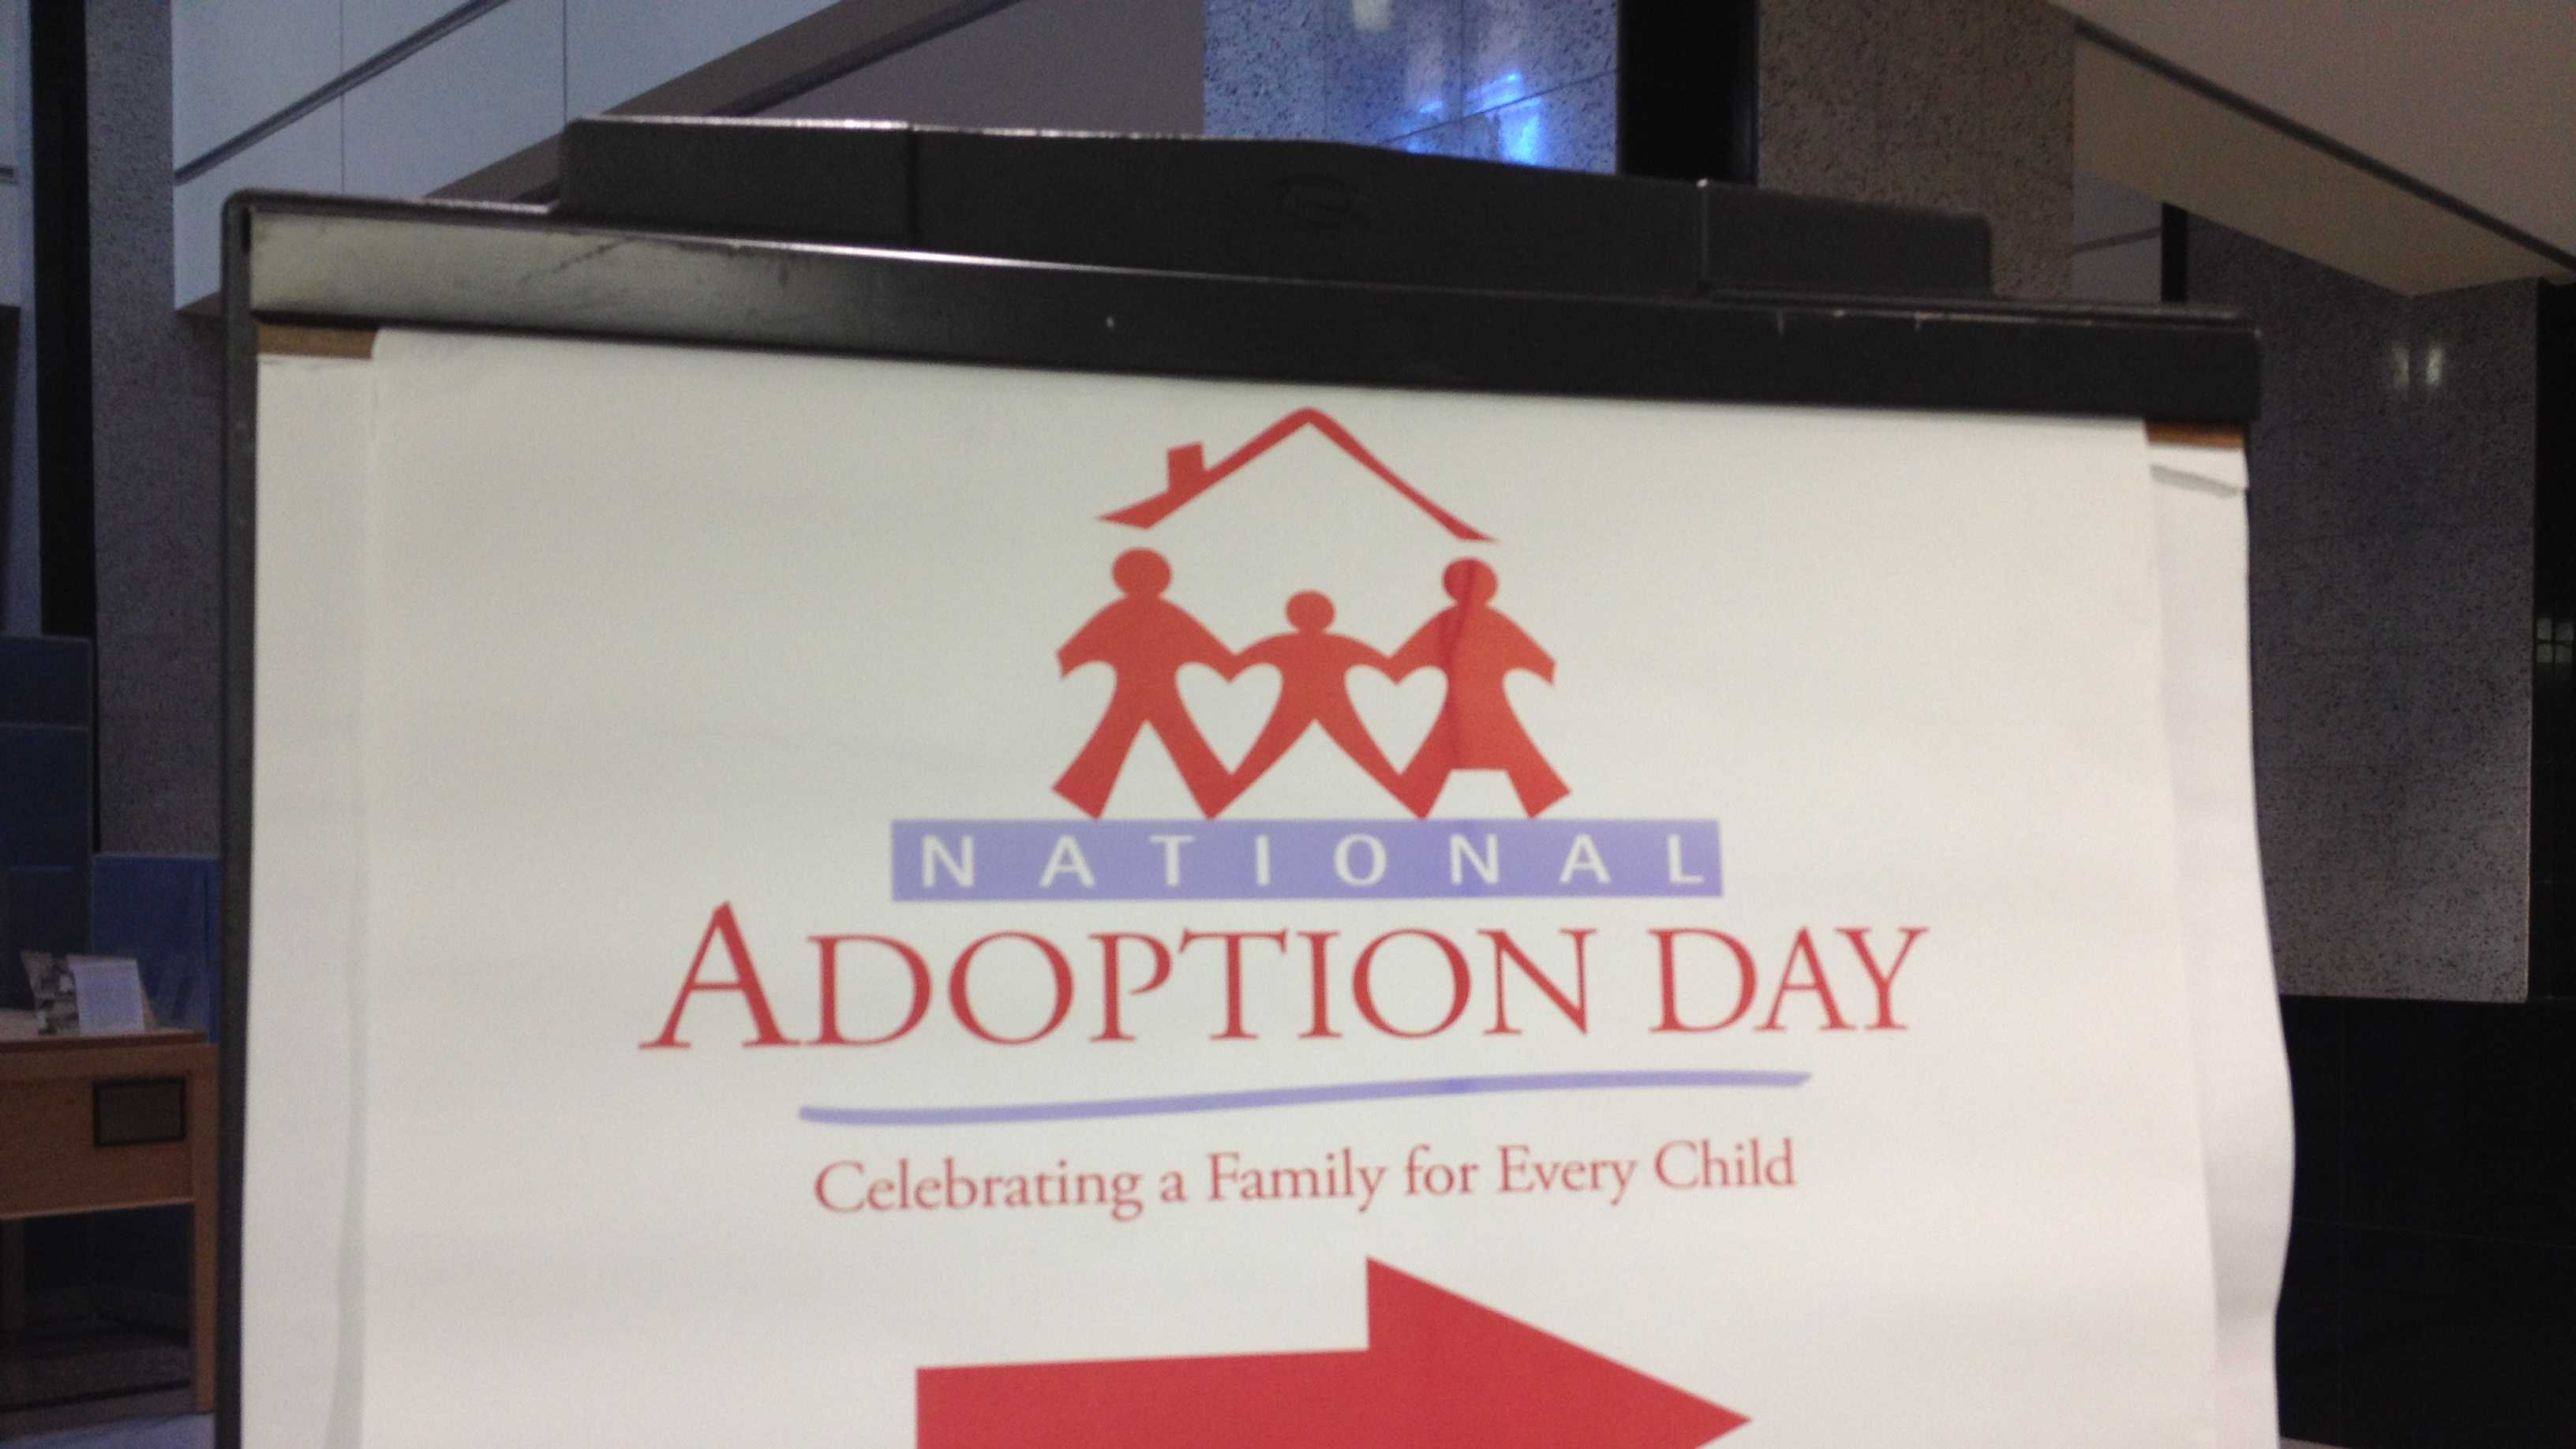 National Adoption Day sign